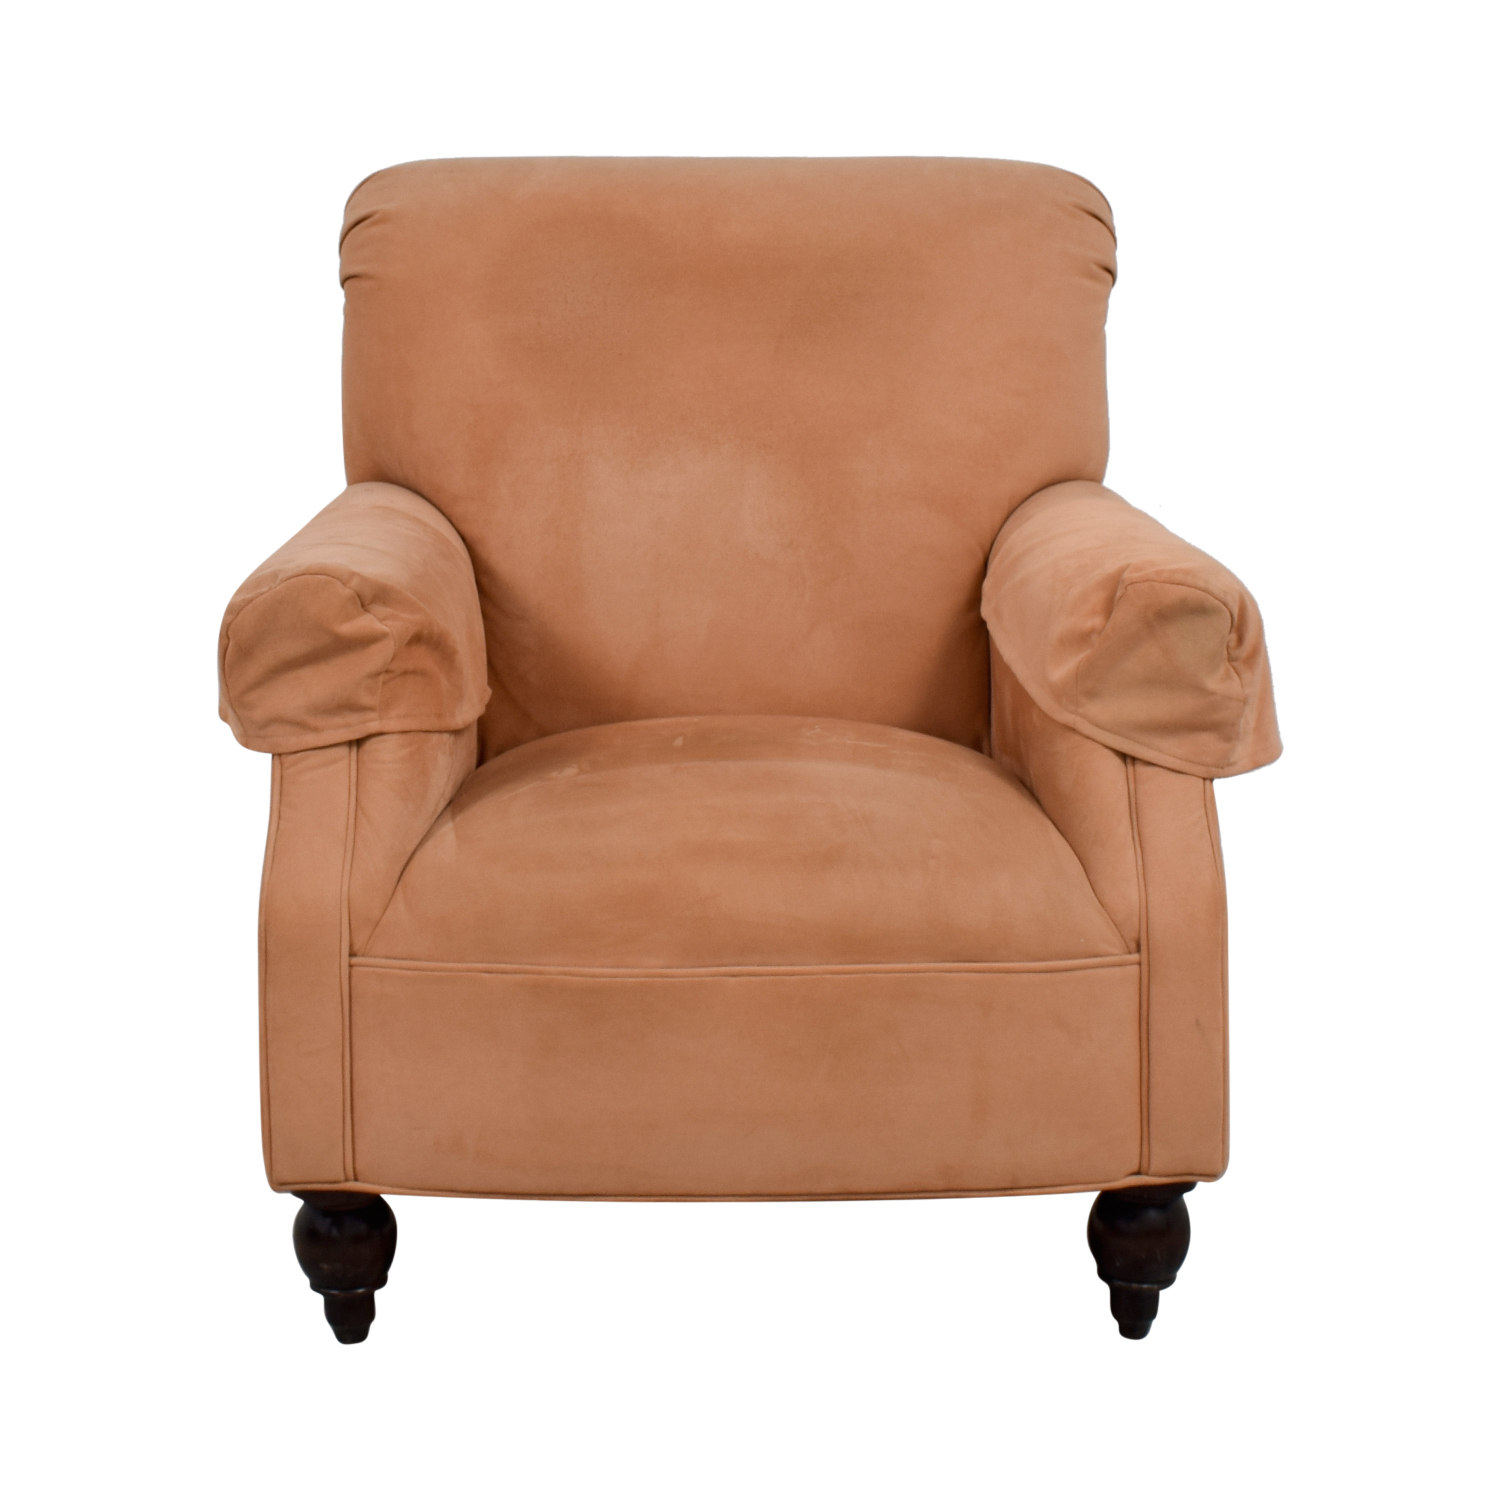 Expressions Devon Microfiber Salmon Accent Chair on sale